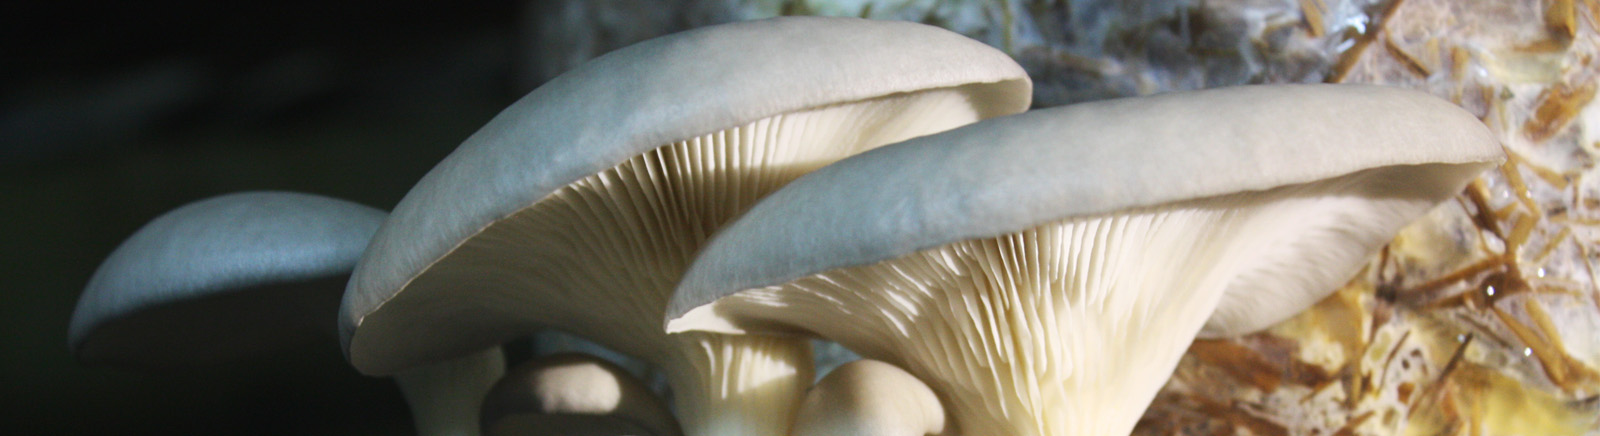 Oyster mushroom on coffee waste